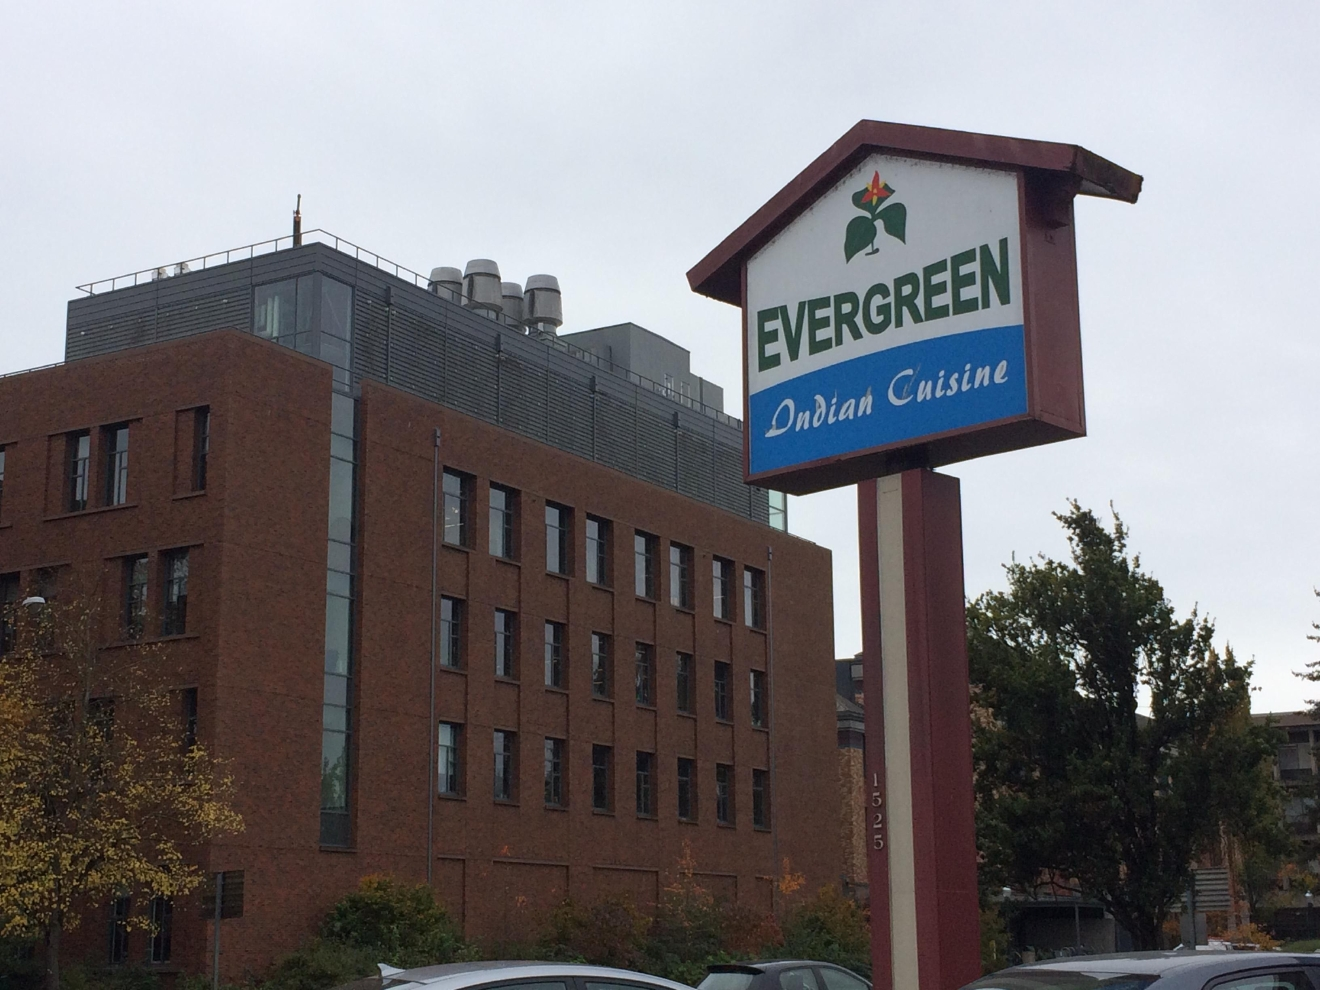 The owner of Evergreen Indian Cuisine said she's worried about what could happen to her restaurant when UO expands. (SBG)